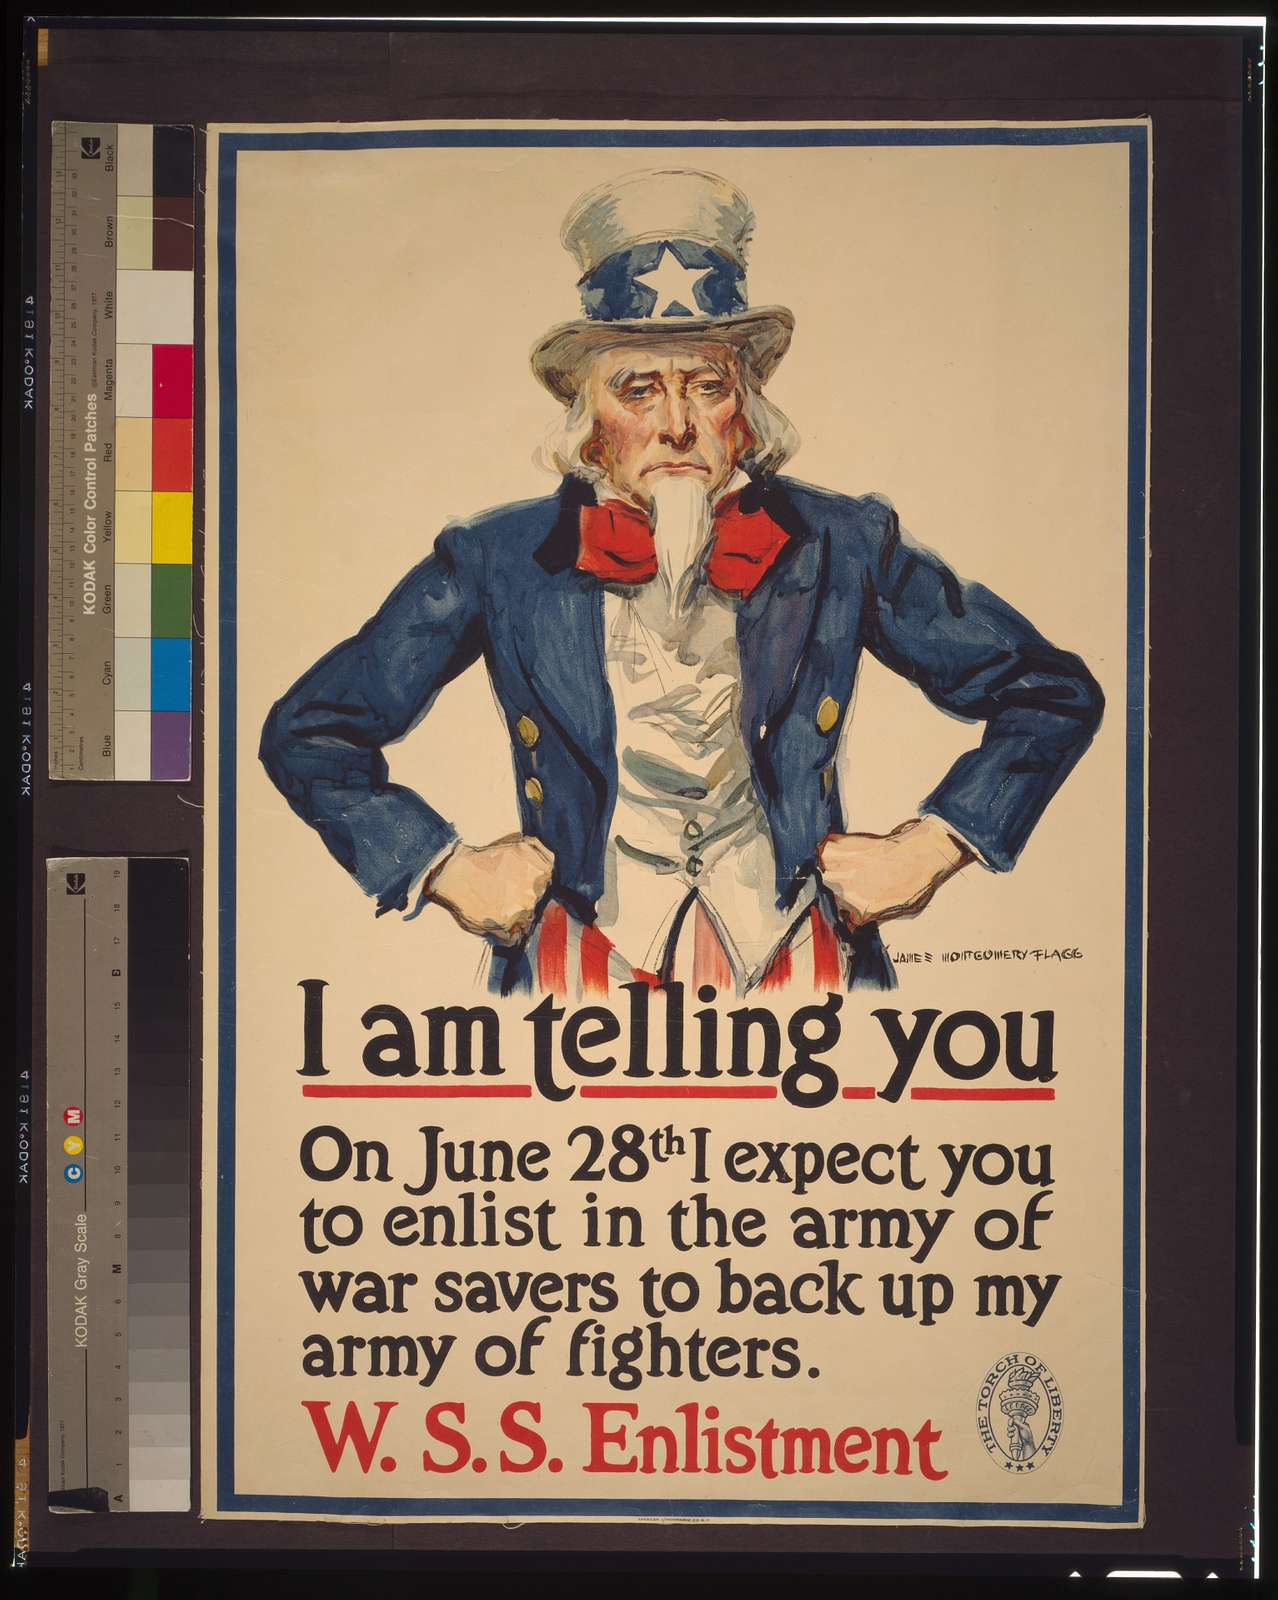 I am telling you--On June 28th I expect you to enlist in the army of war savers to back up my army of fighters / James Montgomery Flagg.